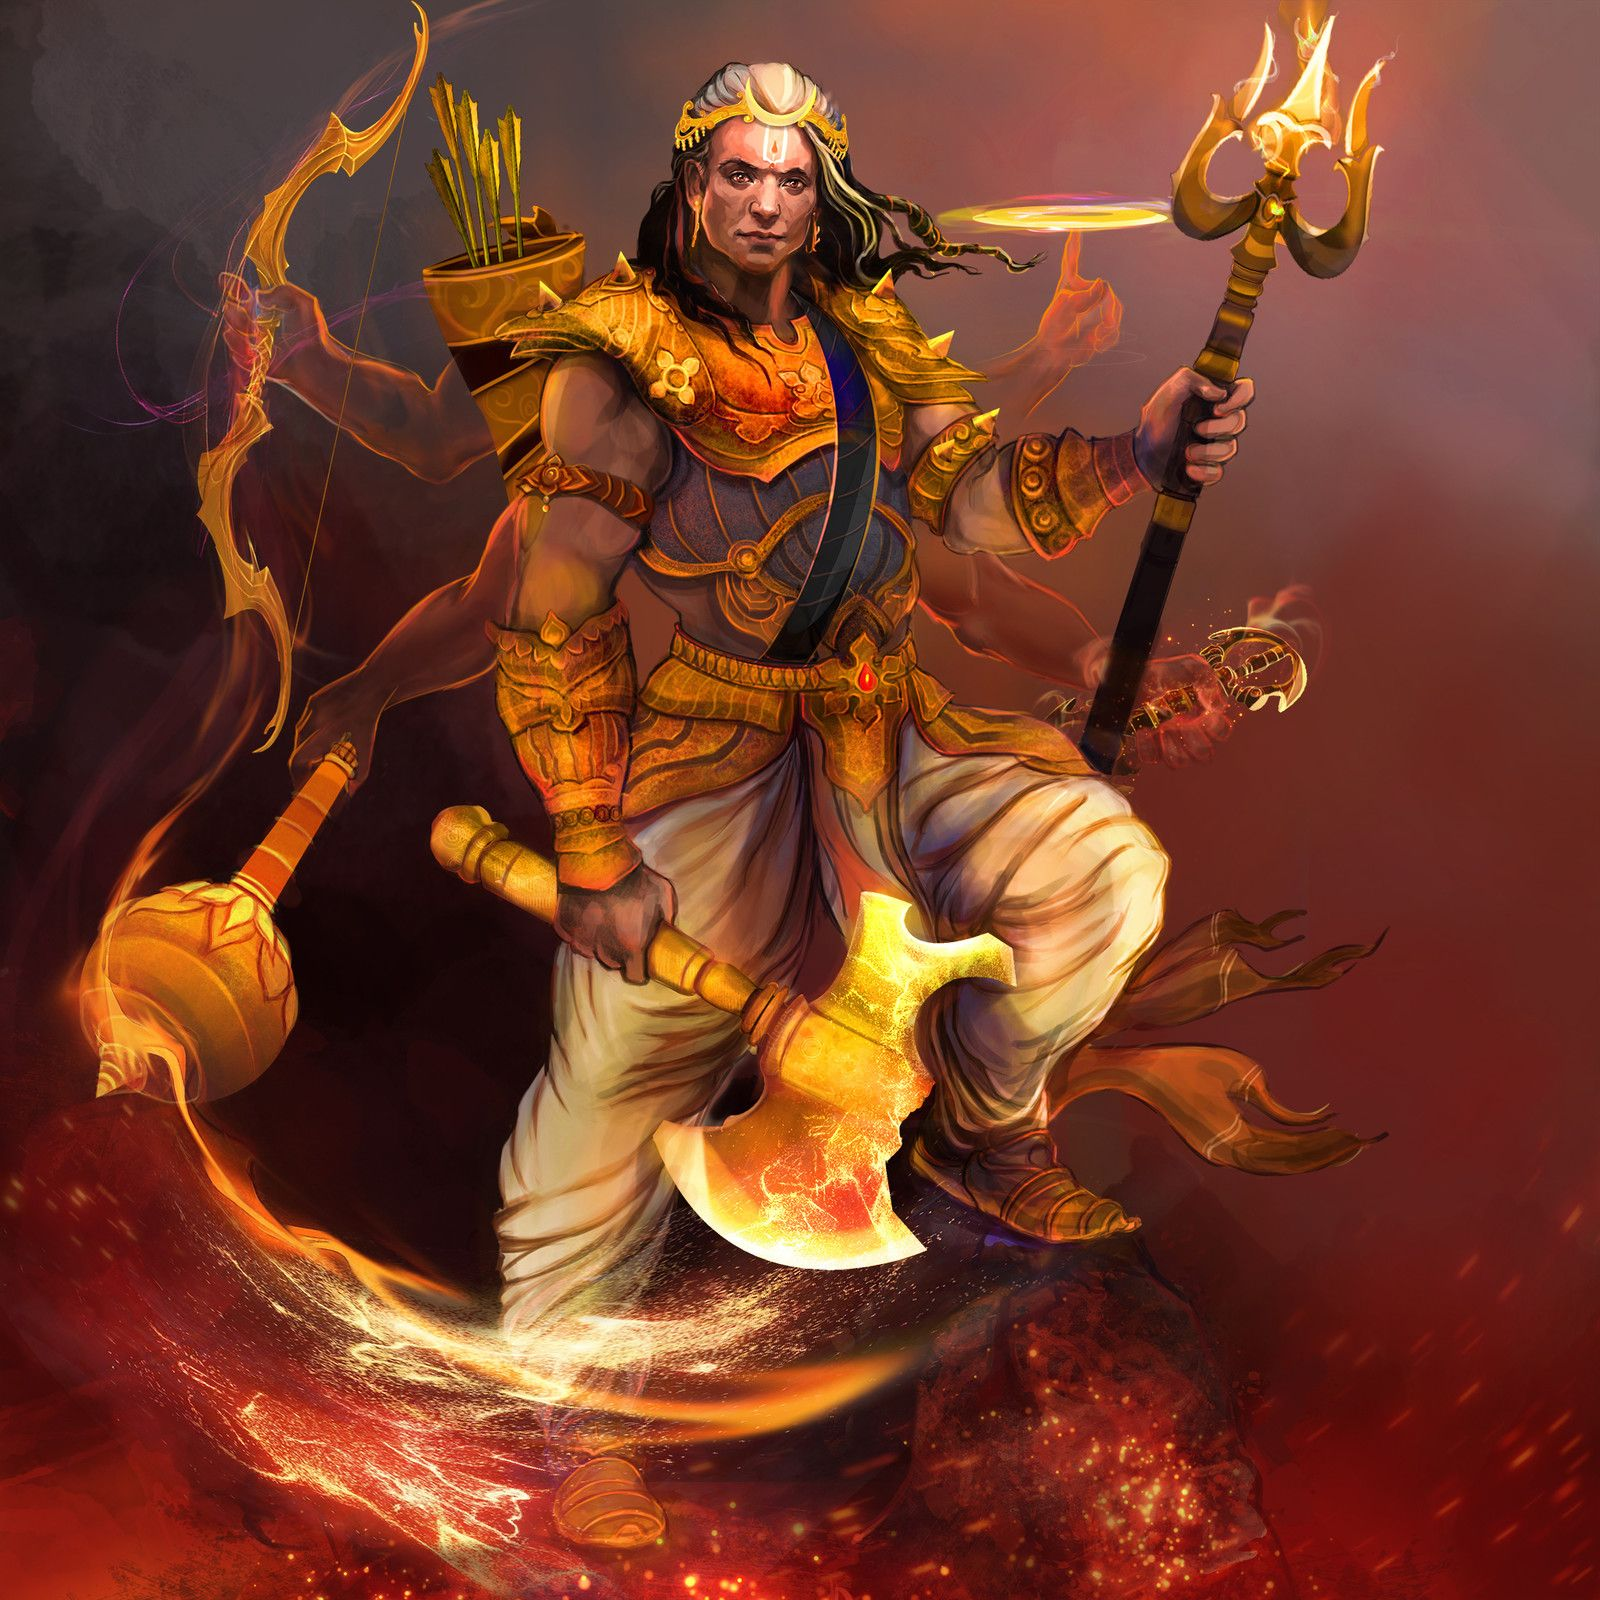 Pin by naveen k on Coconut in 2020 Mythology art